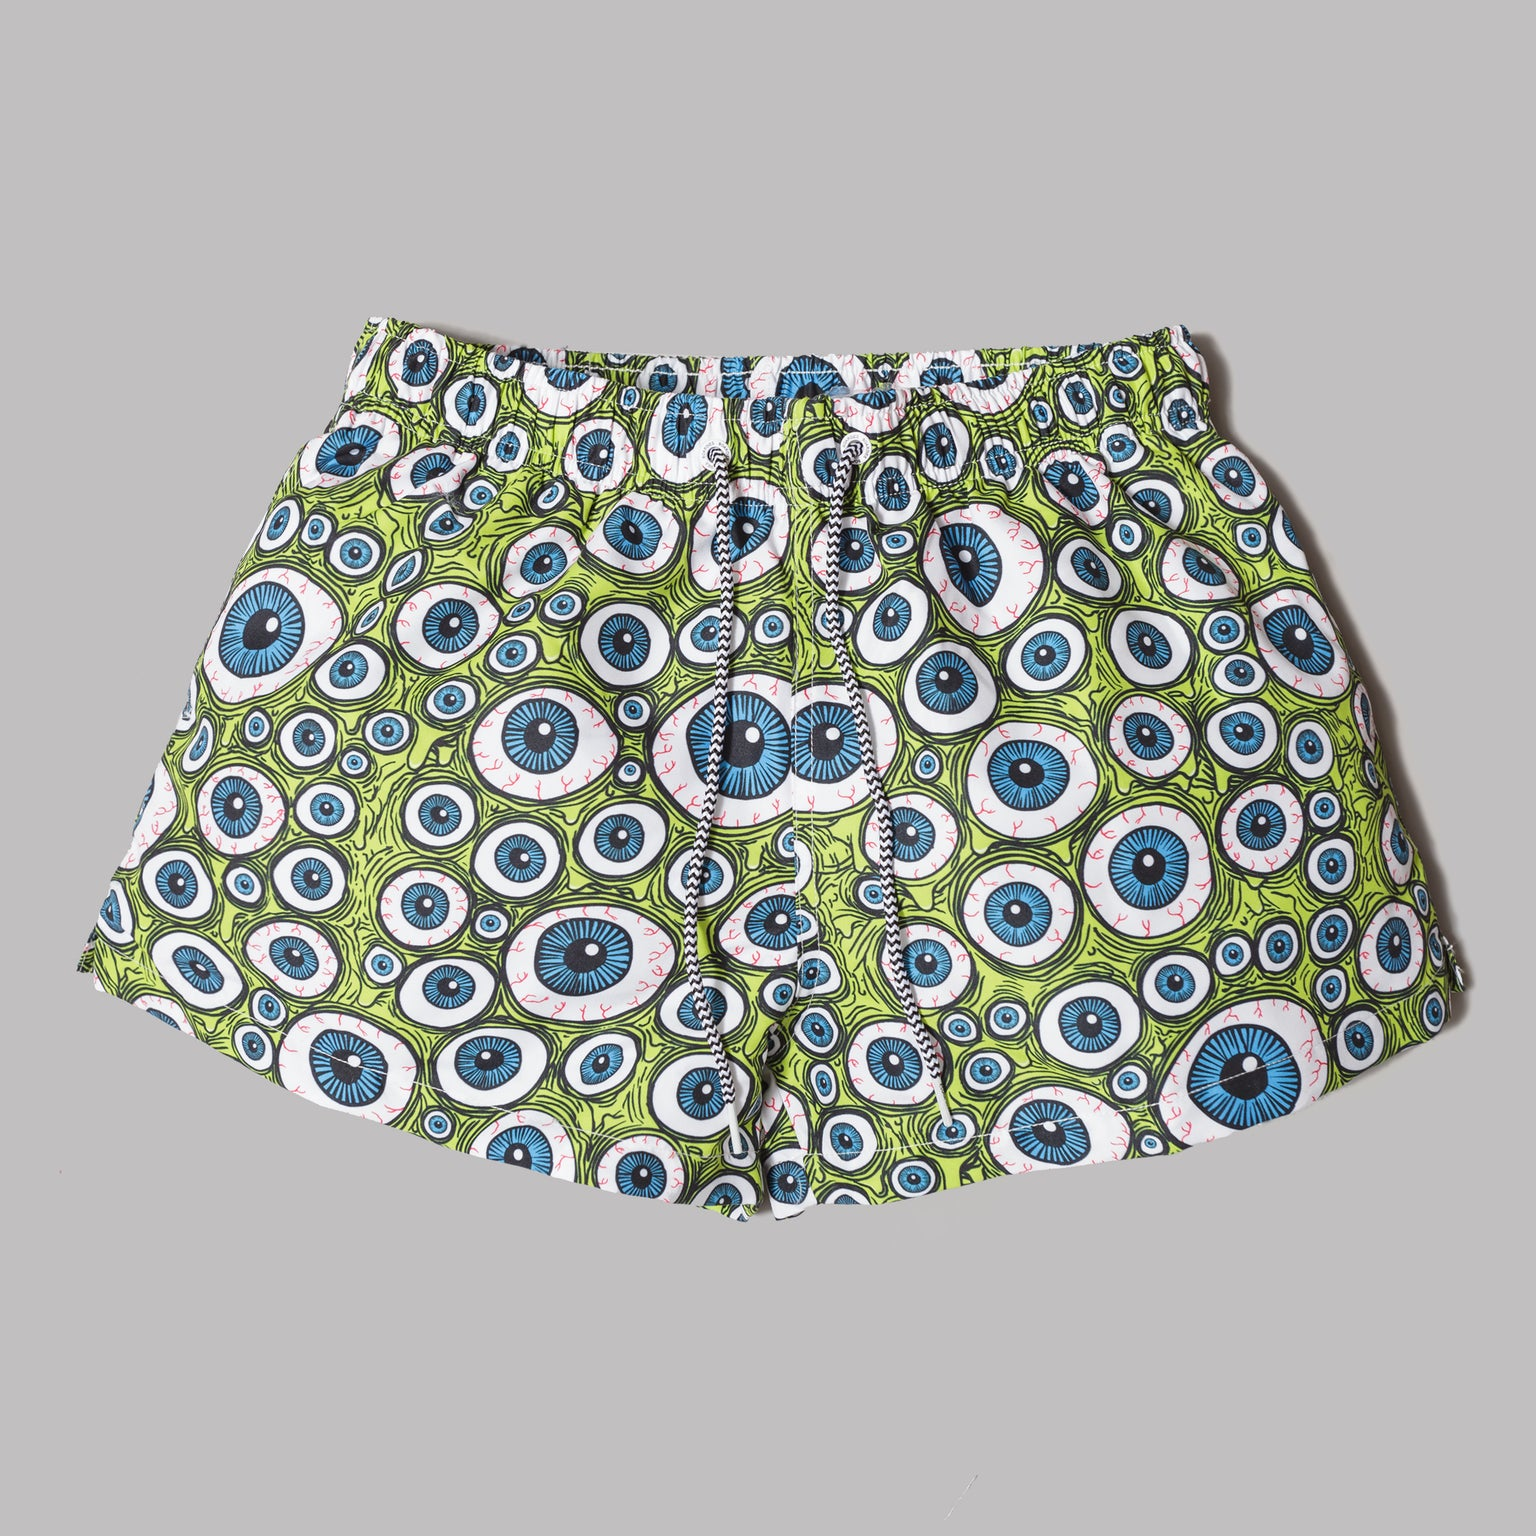 b153f3dad1 Boardies Fos Eyes Lime Shortie Short (Green) – Oi Polloi